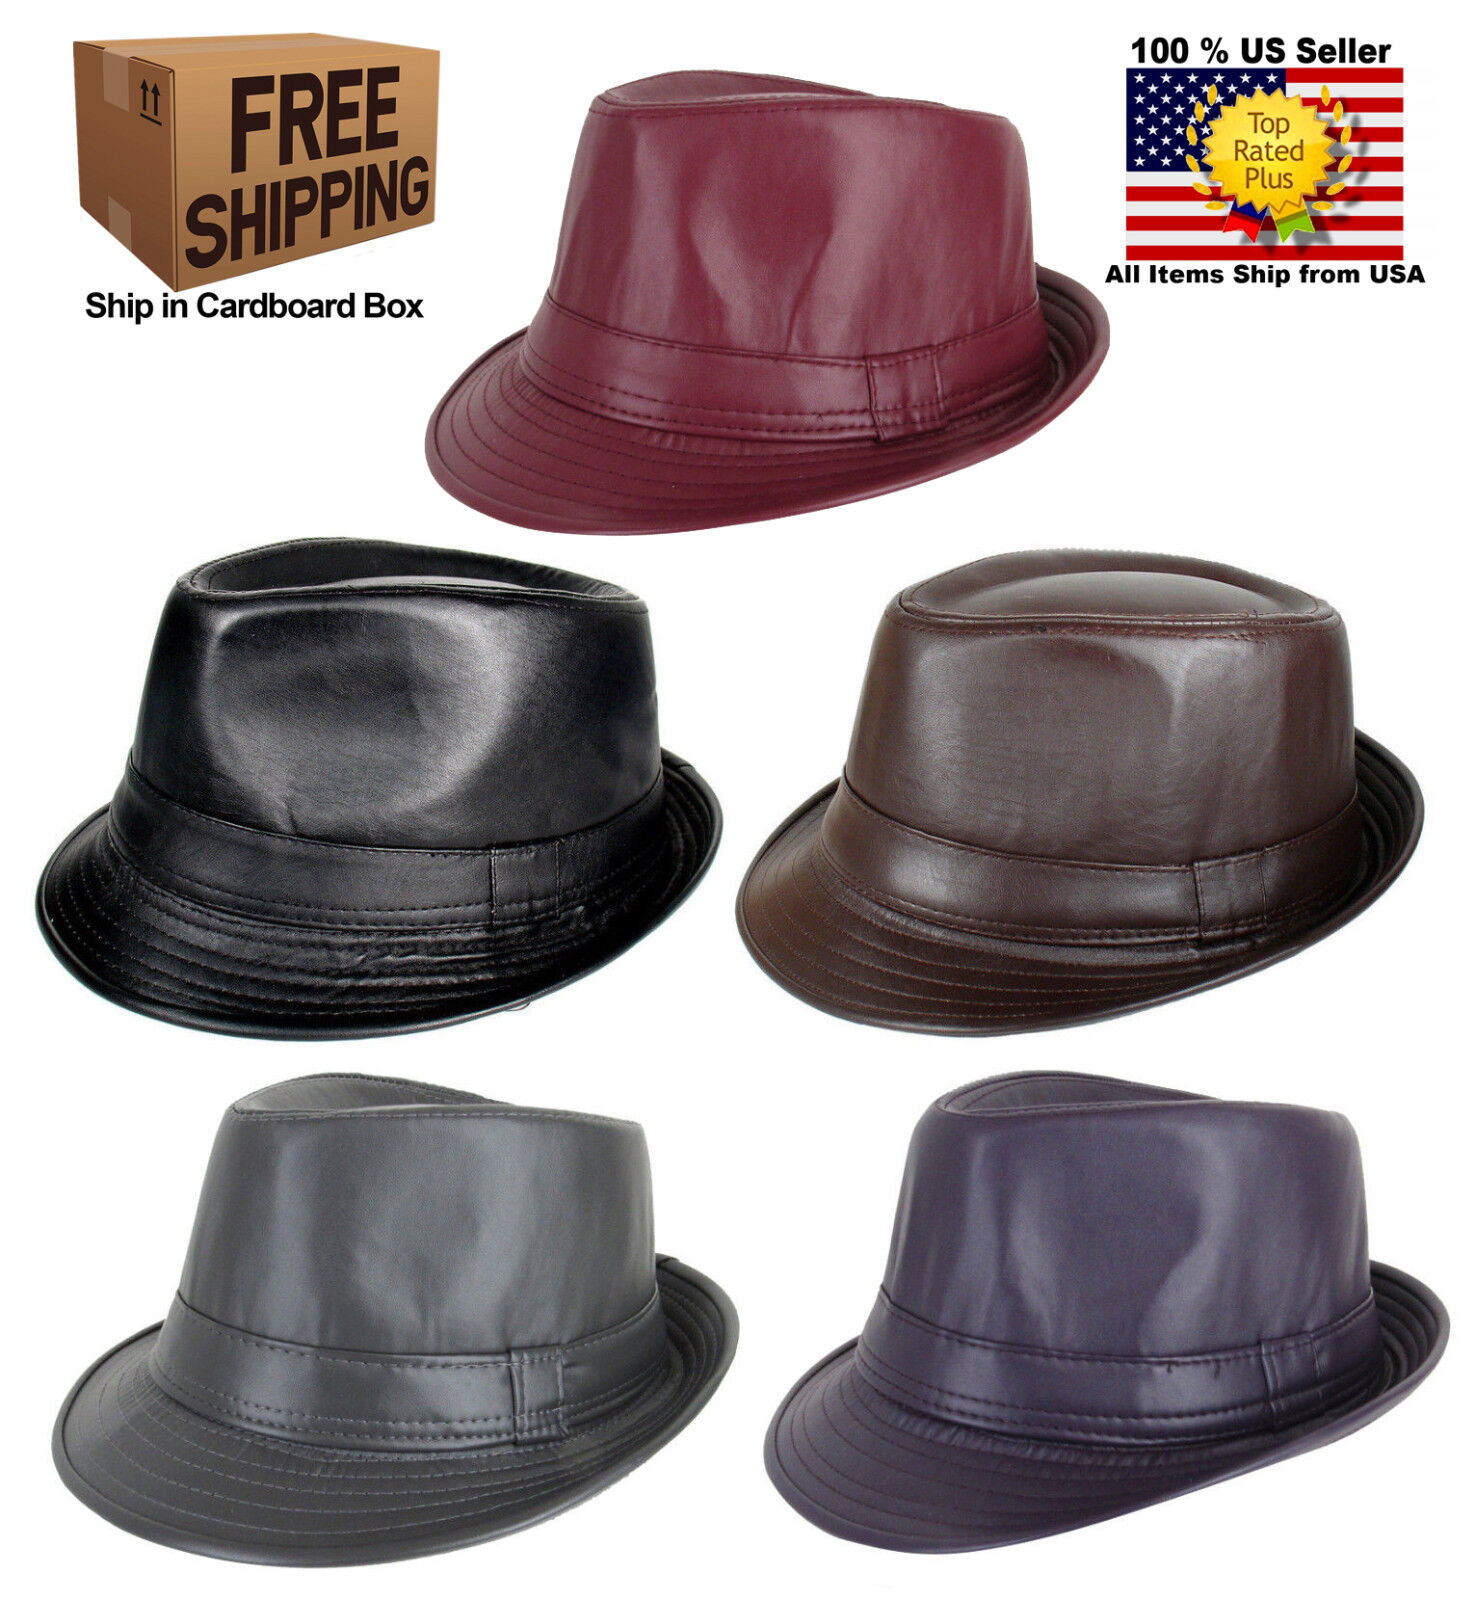 MEN WOMEN FAUX LEATHER FEDORA TRILBY CUBAN STYLE UPTURN SHORT BRIM CAP HAT Clothing, Shoes & Accessories